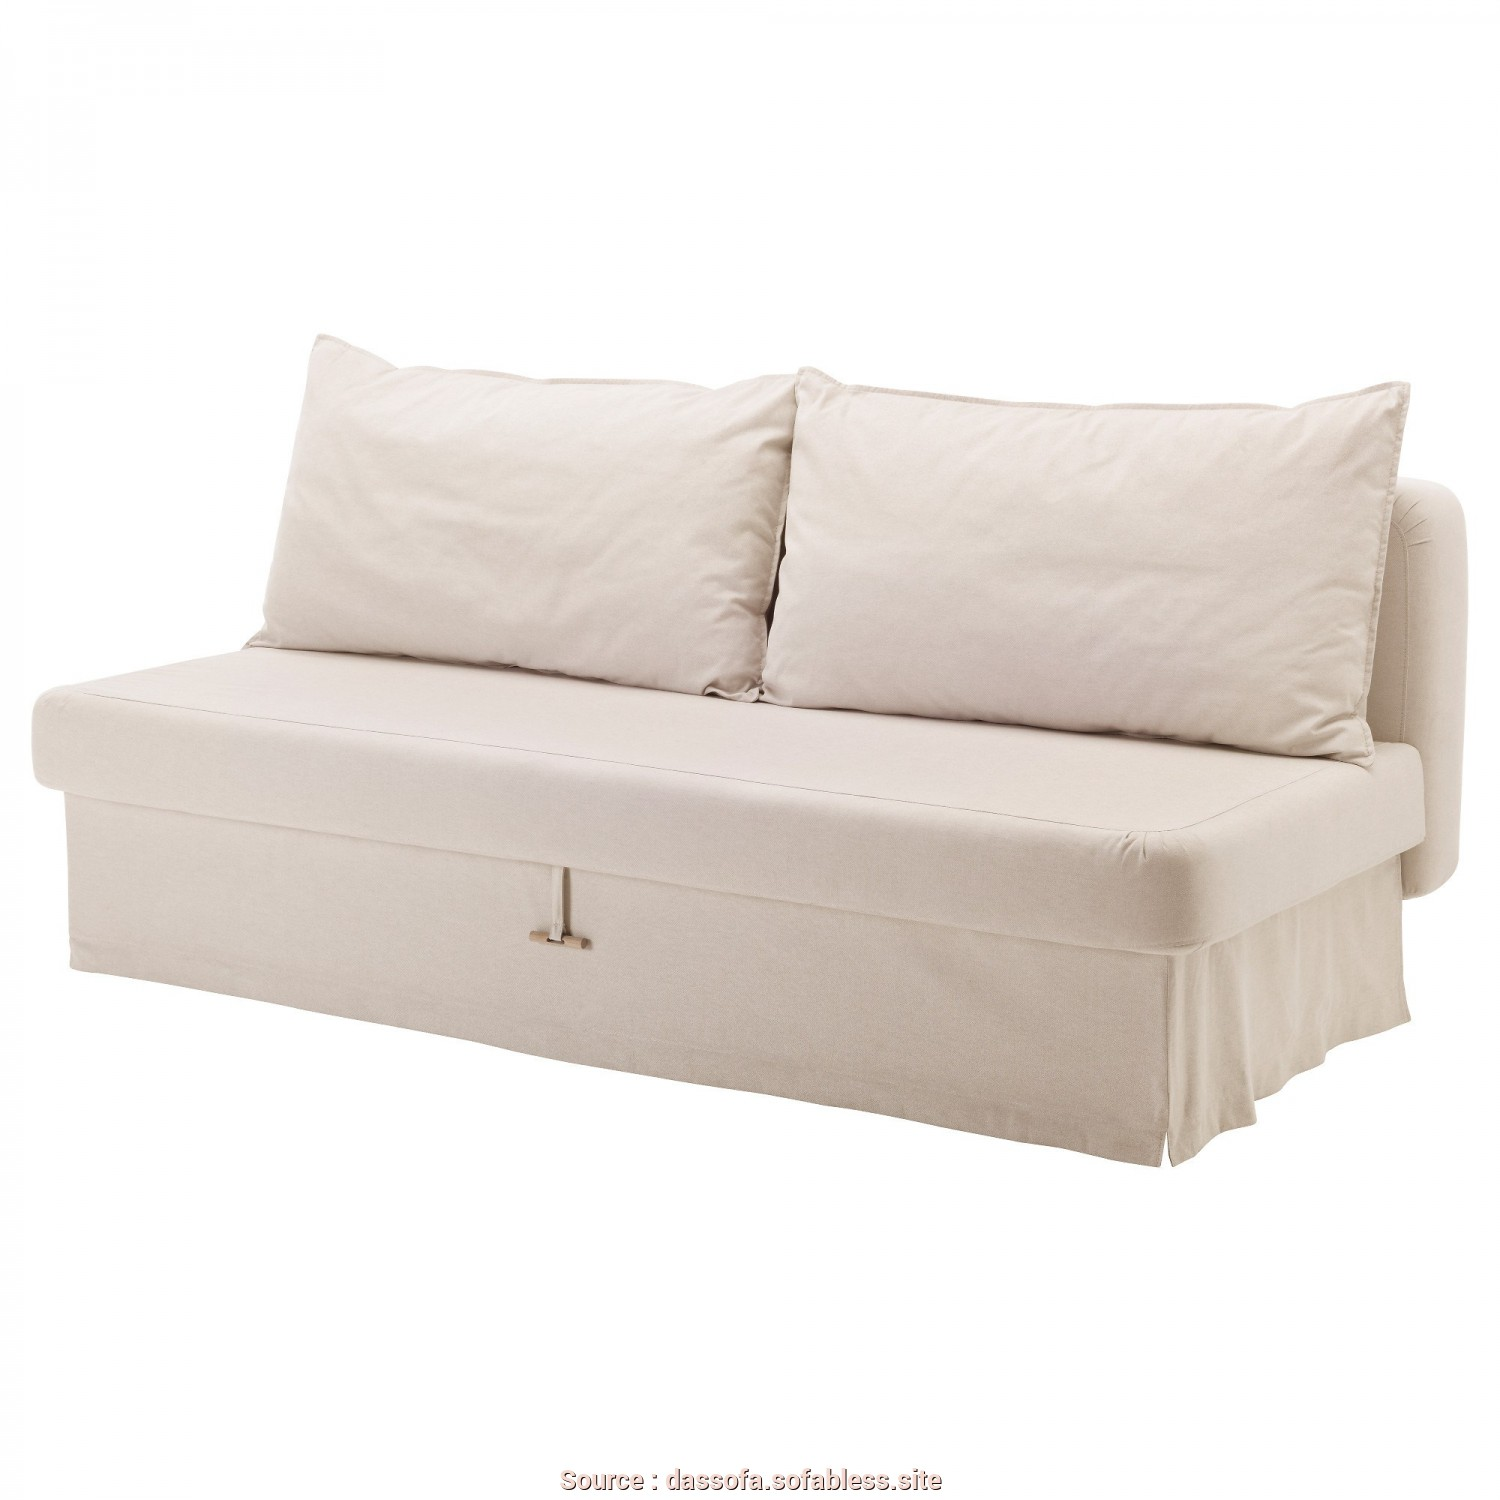 Futon Ikea Uk, Eccellente Futon Sofa Ikea Best Of Fotos Futon Sofa Cama Ikeasofas Couches